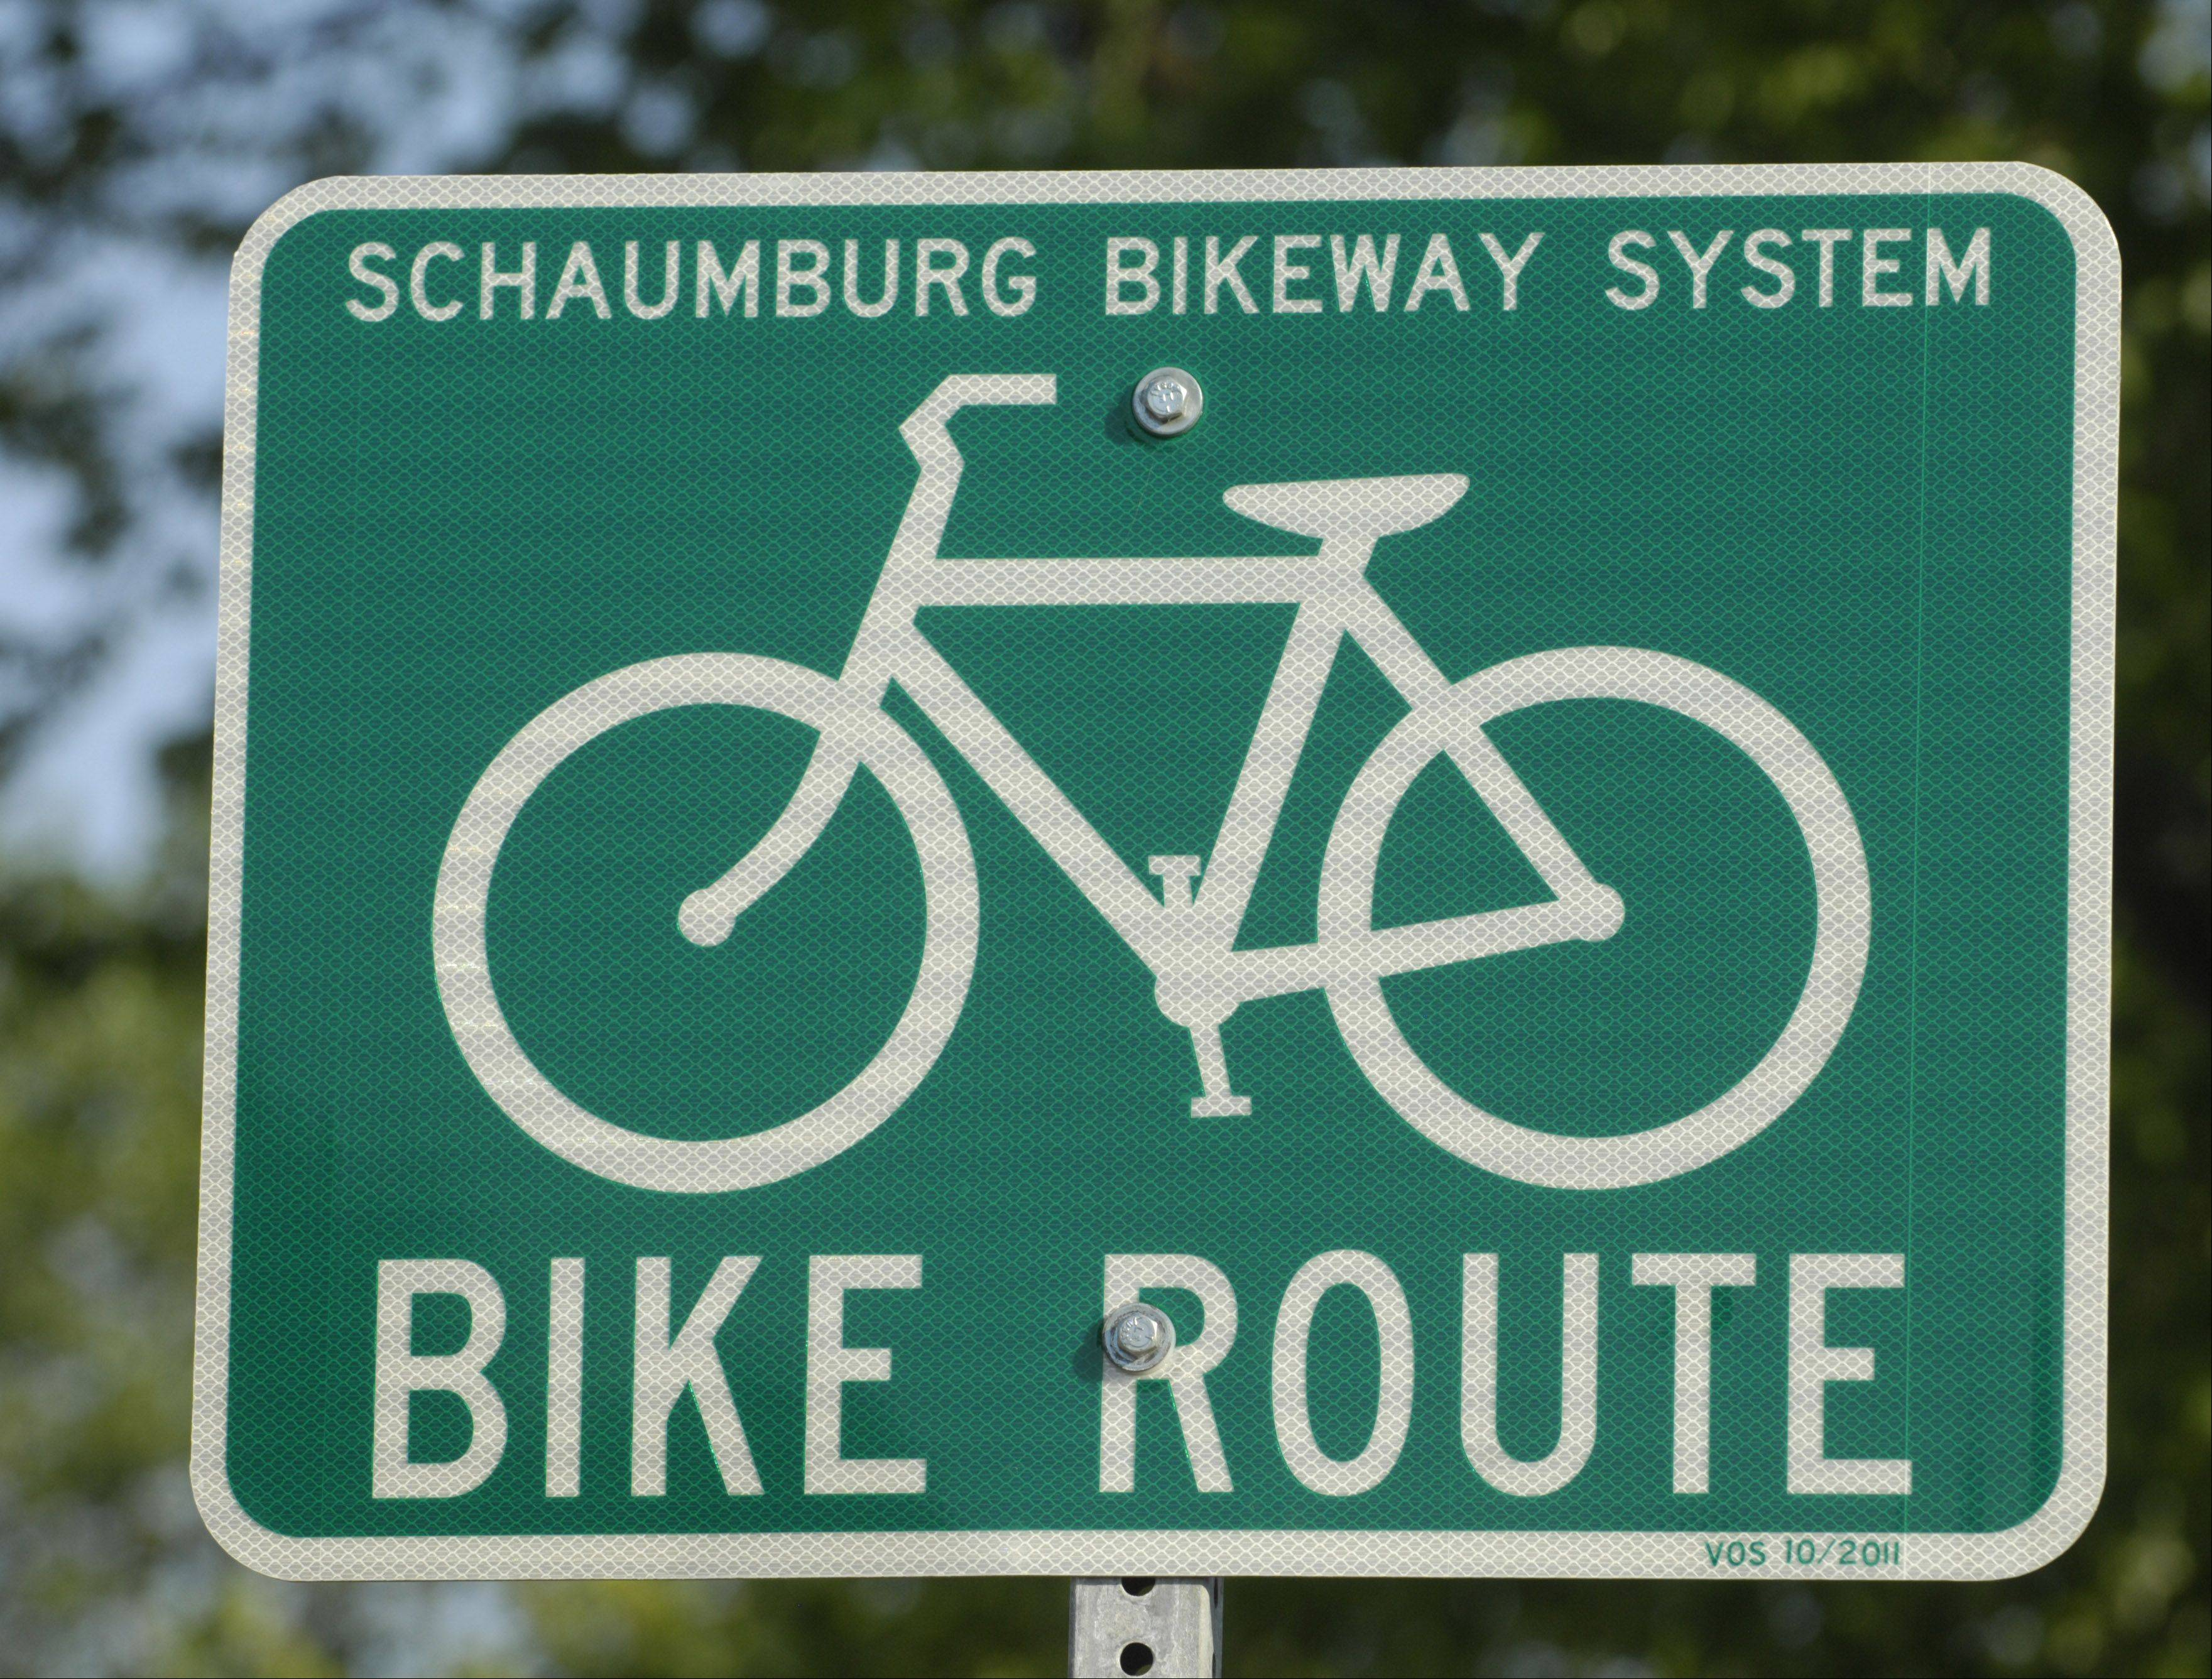 Grant spurs move to bikeable, walkable communities